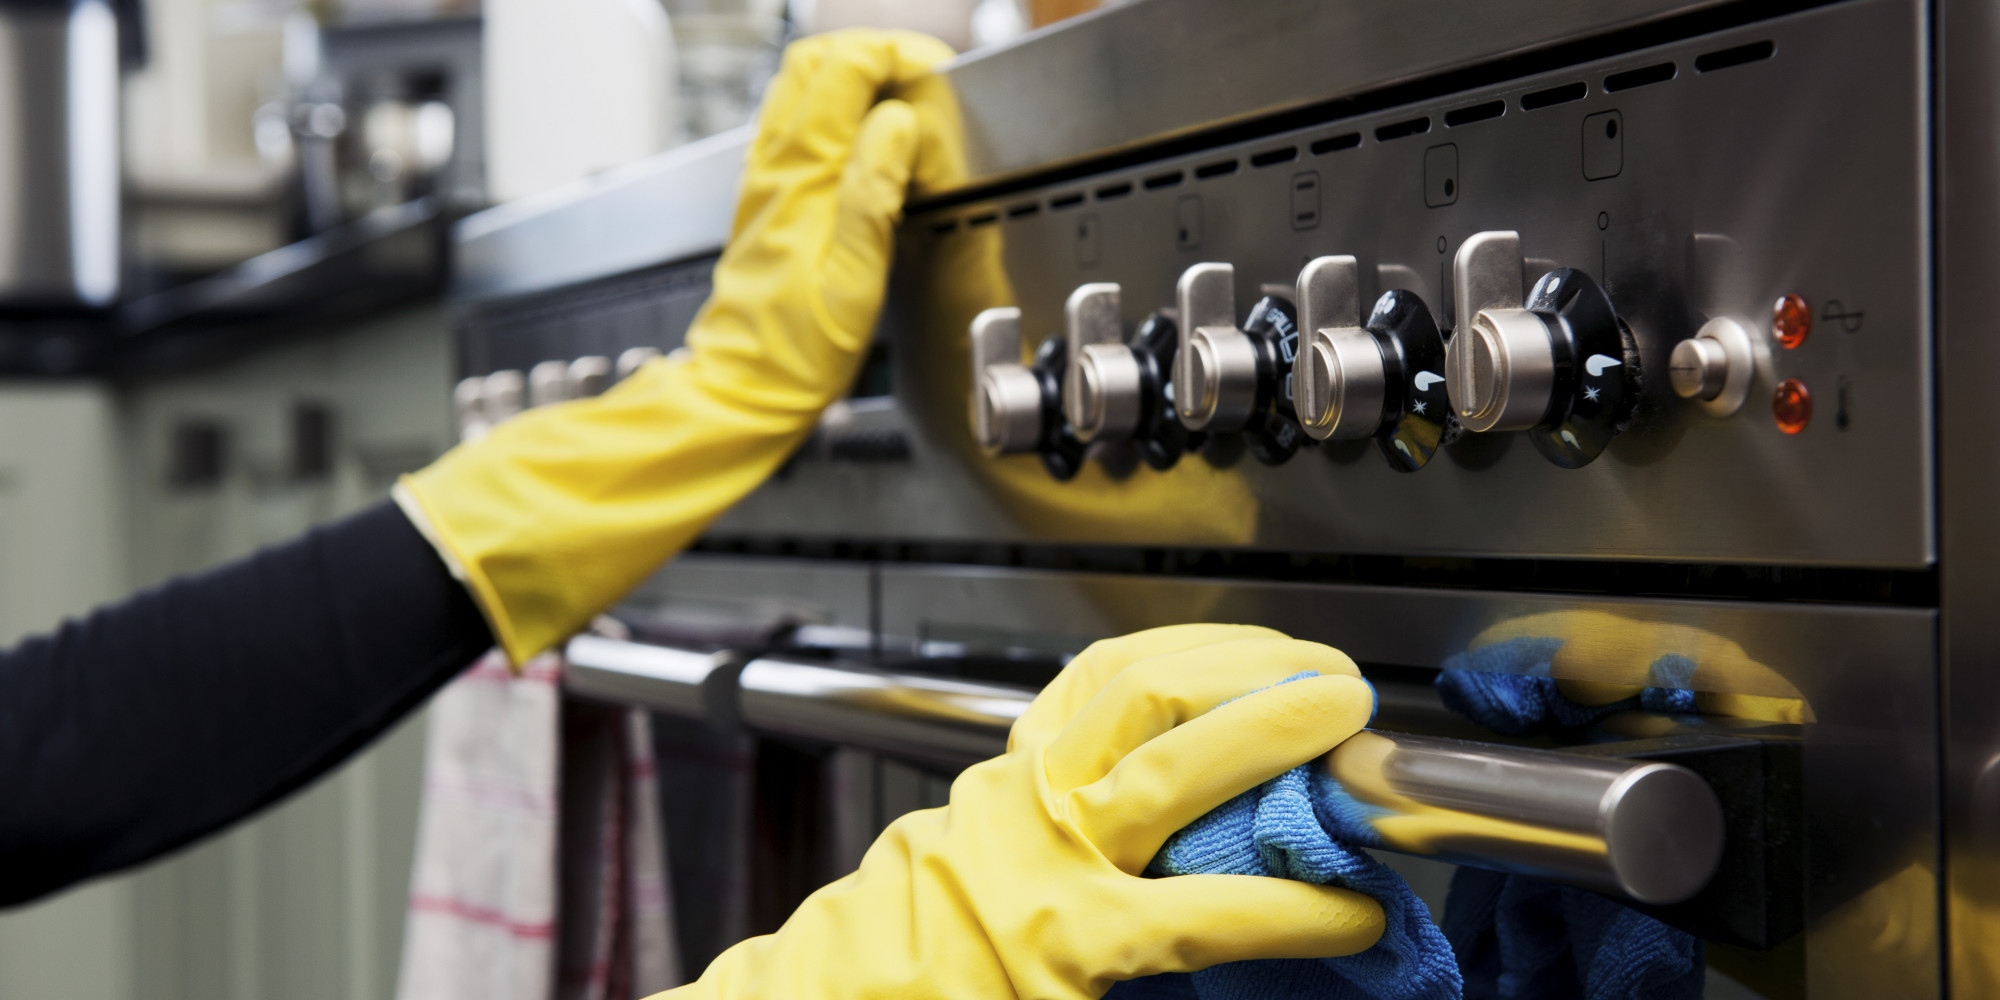 Manually or automatically clean your stove and prepare your kitchen for the holiday season